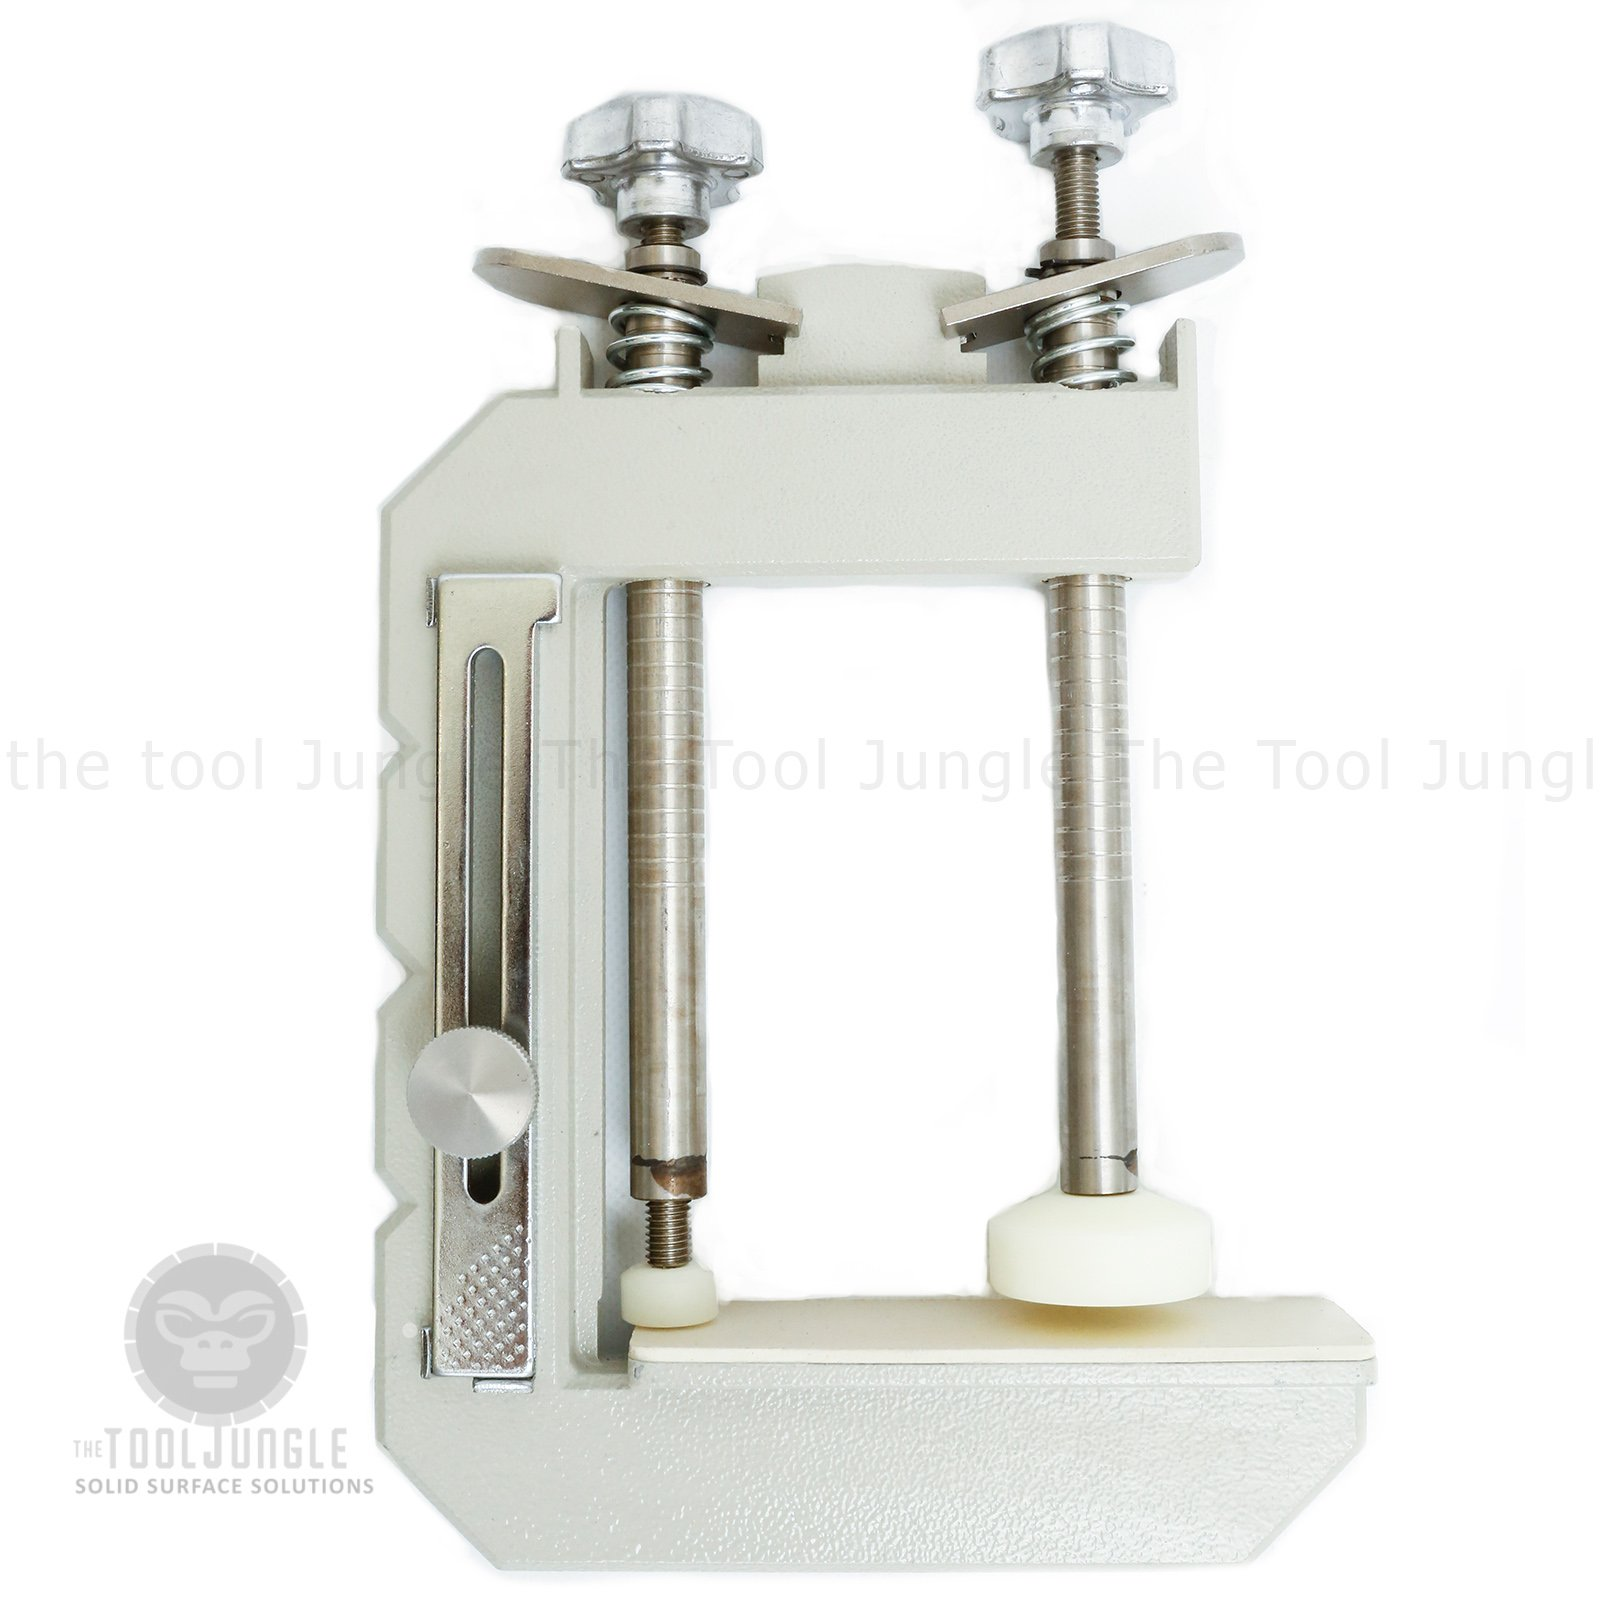 45 Degree Miter Clamps for Slabs